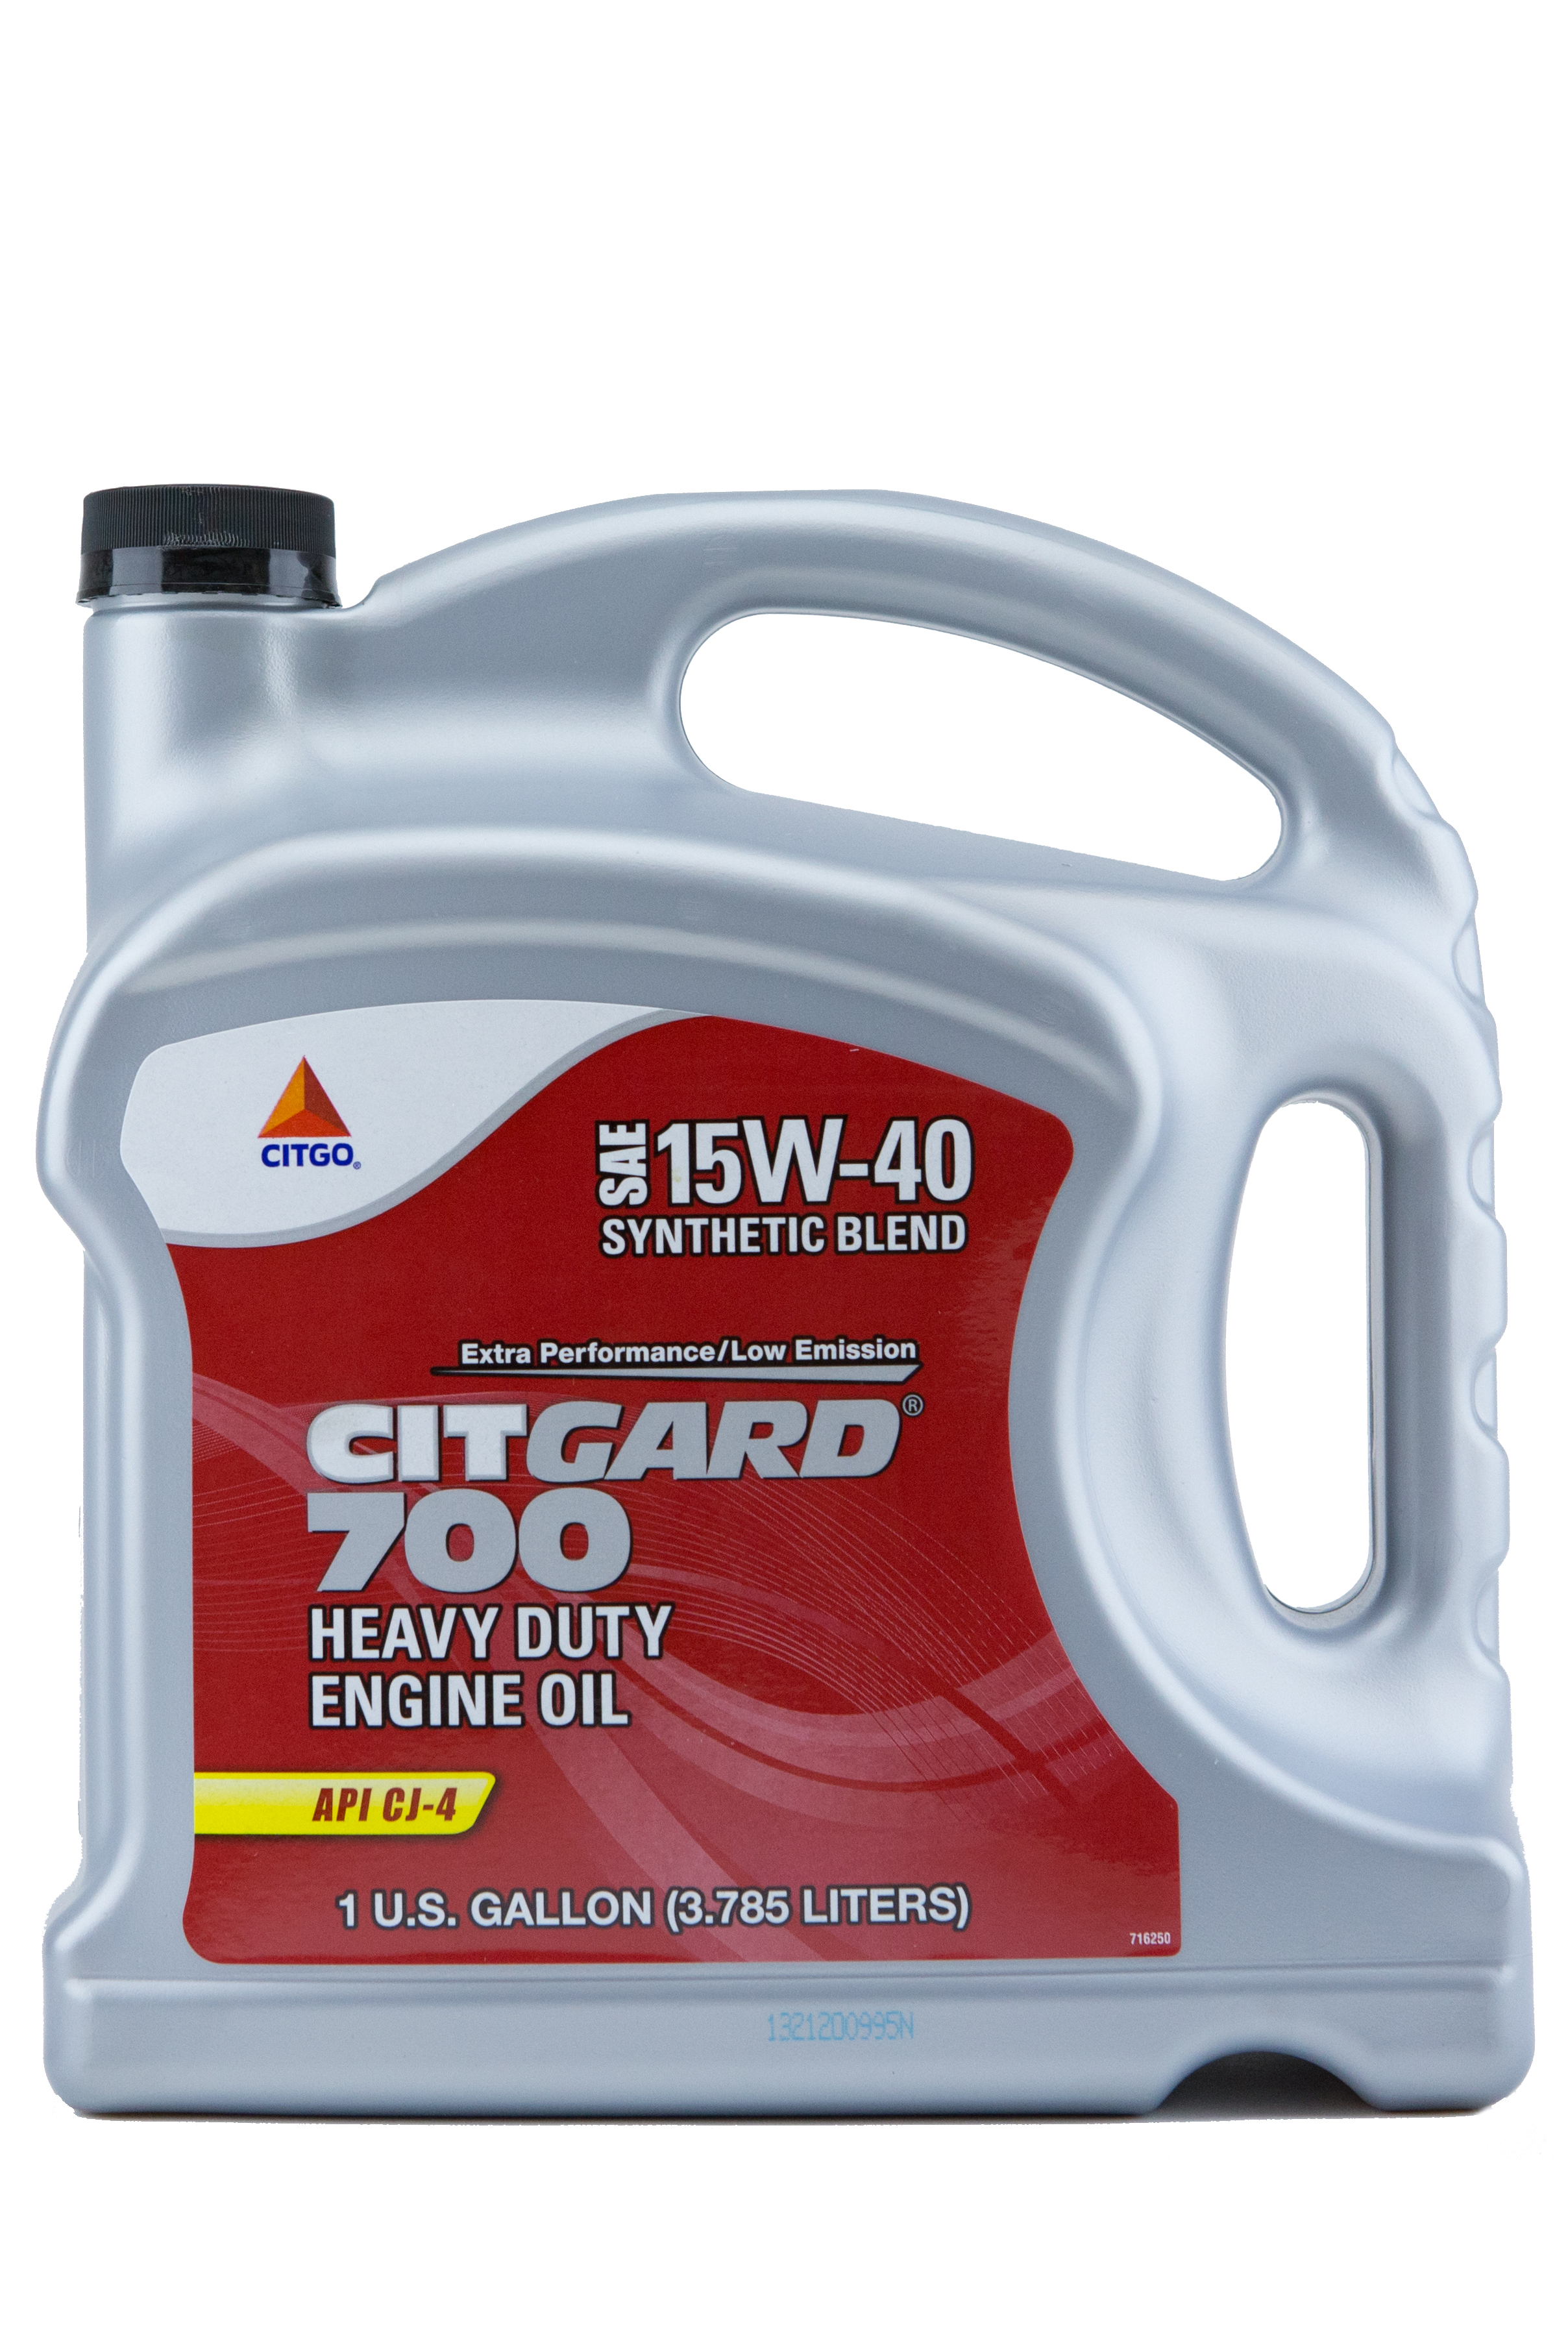 Buy citgo citgard 700 15w40 heavy duty engine oil online for Why use synthetic blend motor oil